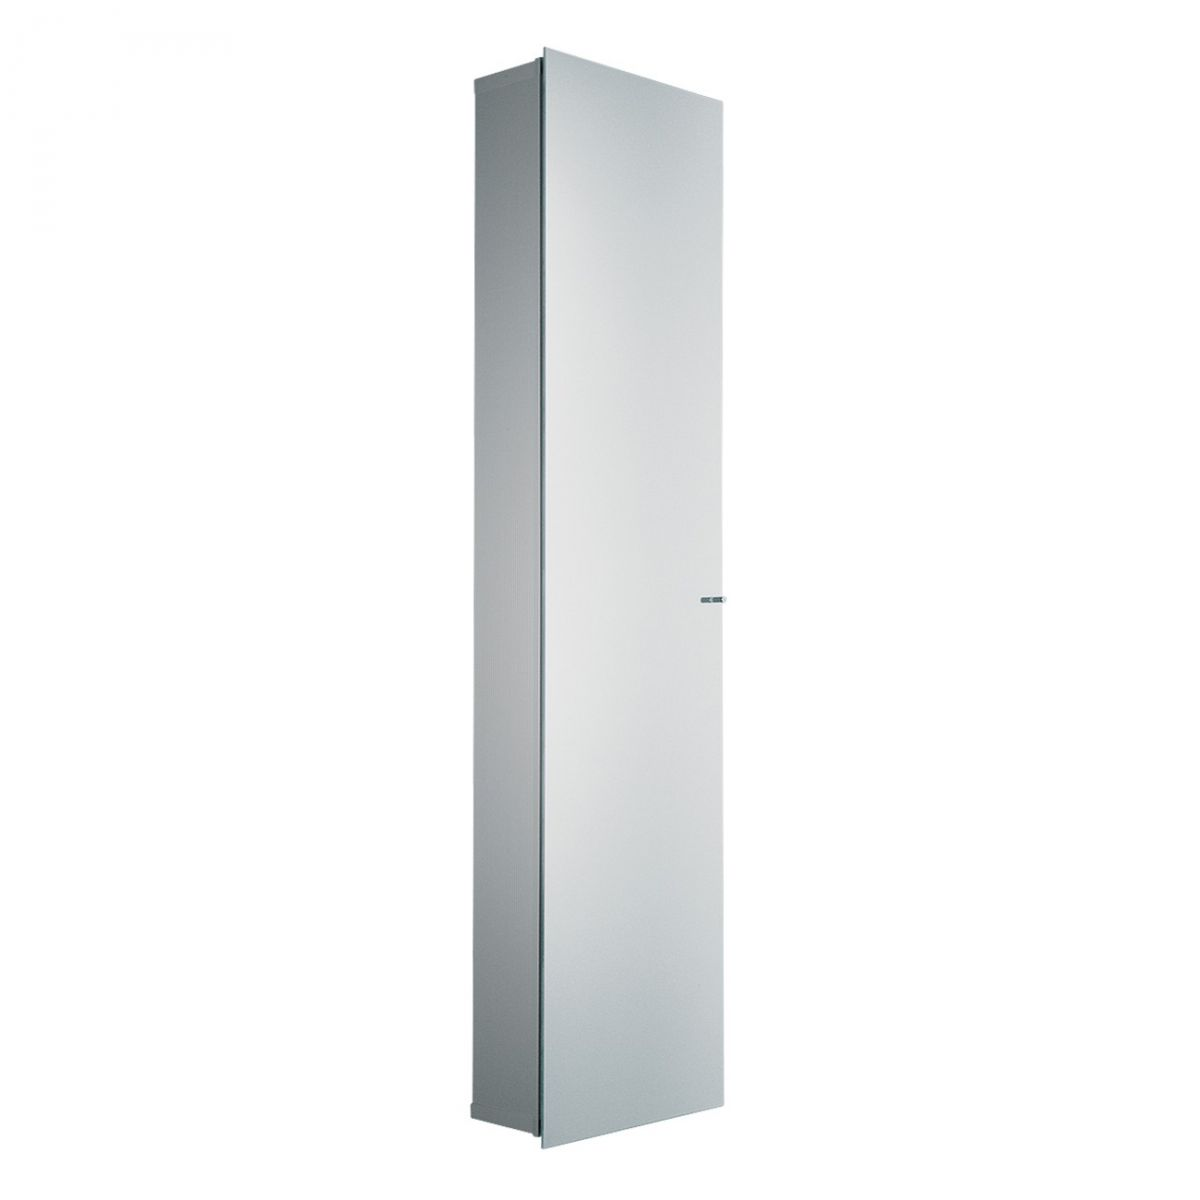 tall mirror bathroom cabinet keuco royal 30 mirror cabinet uk bathrooms 27035